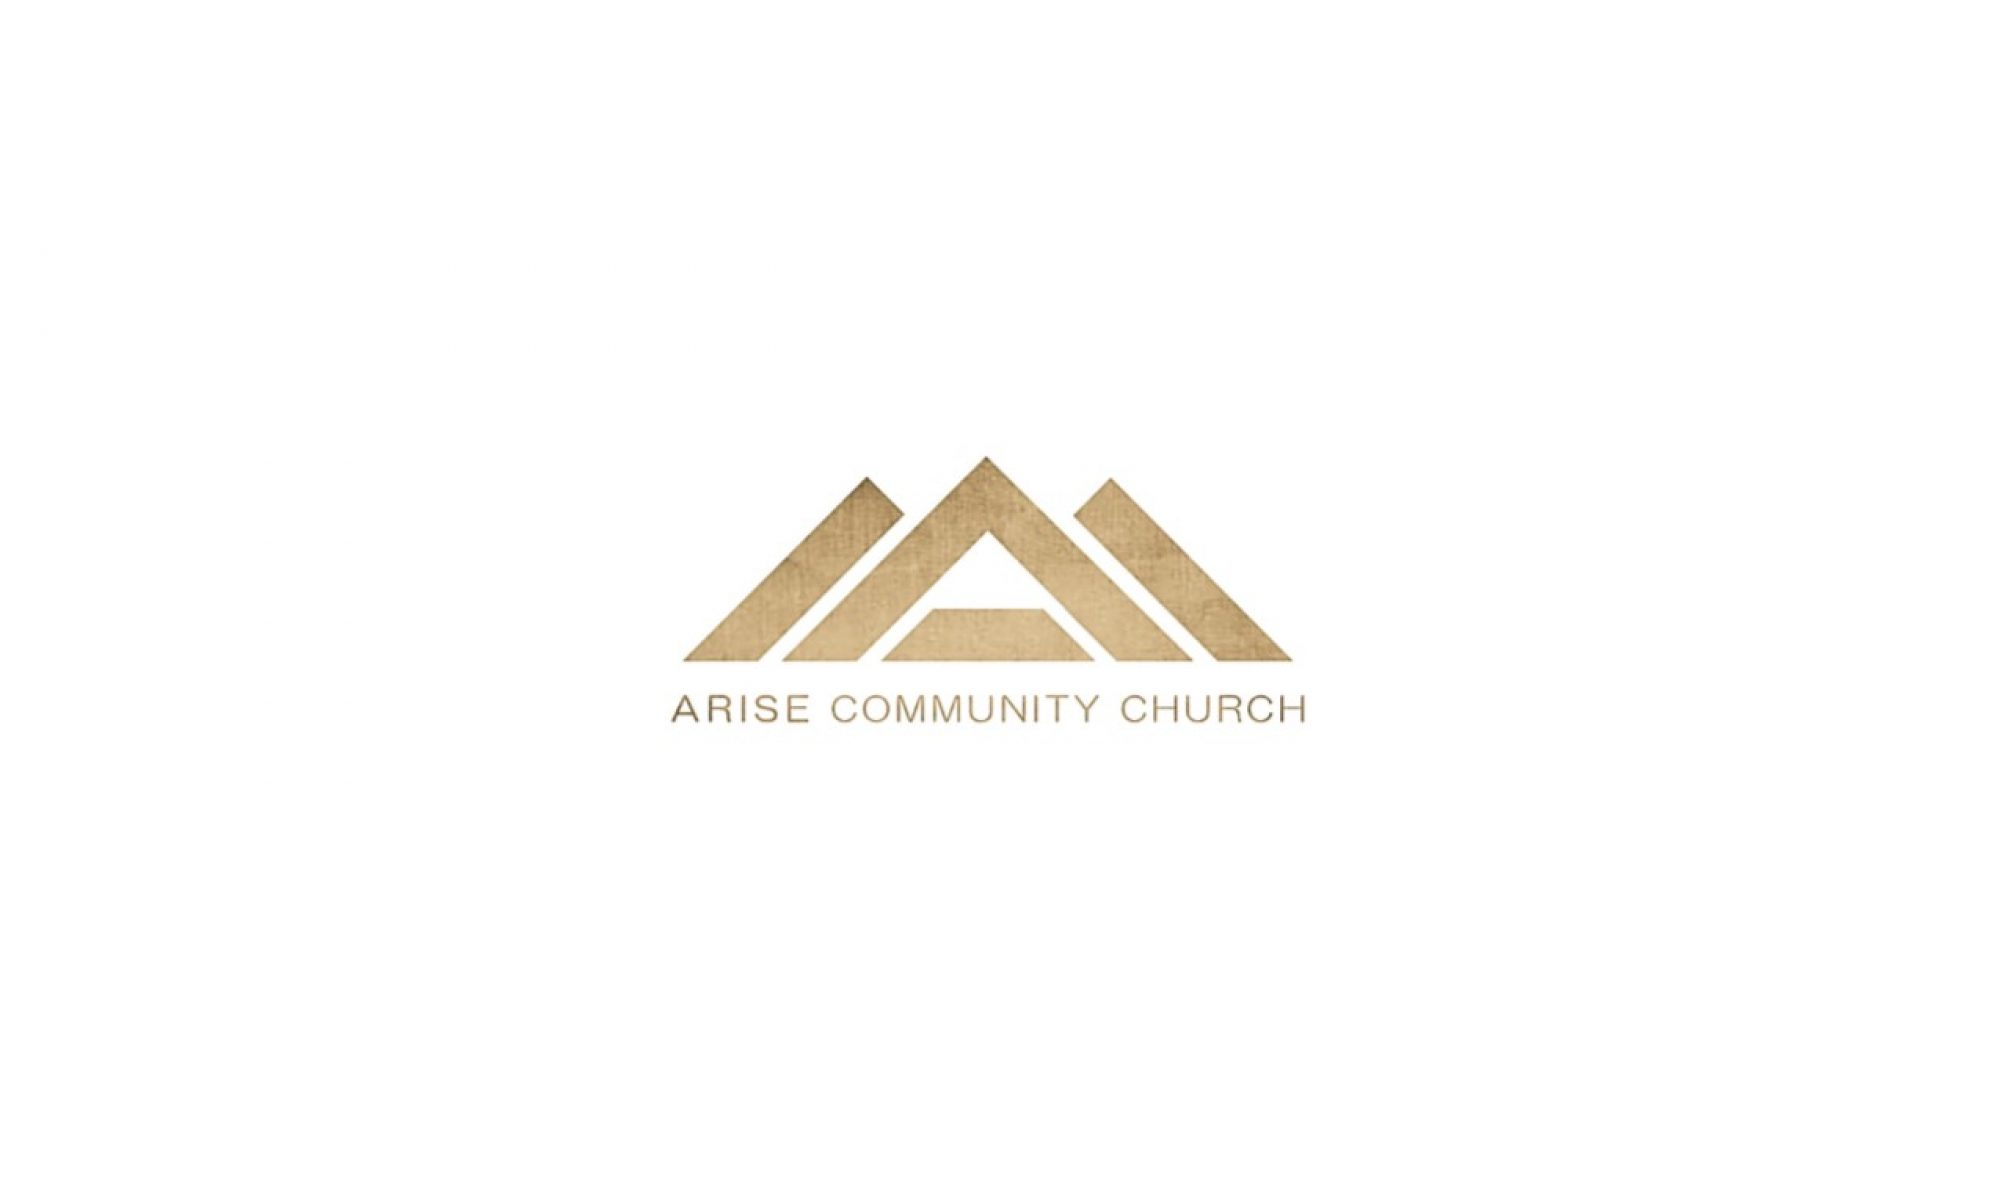 Arise Community Church